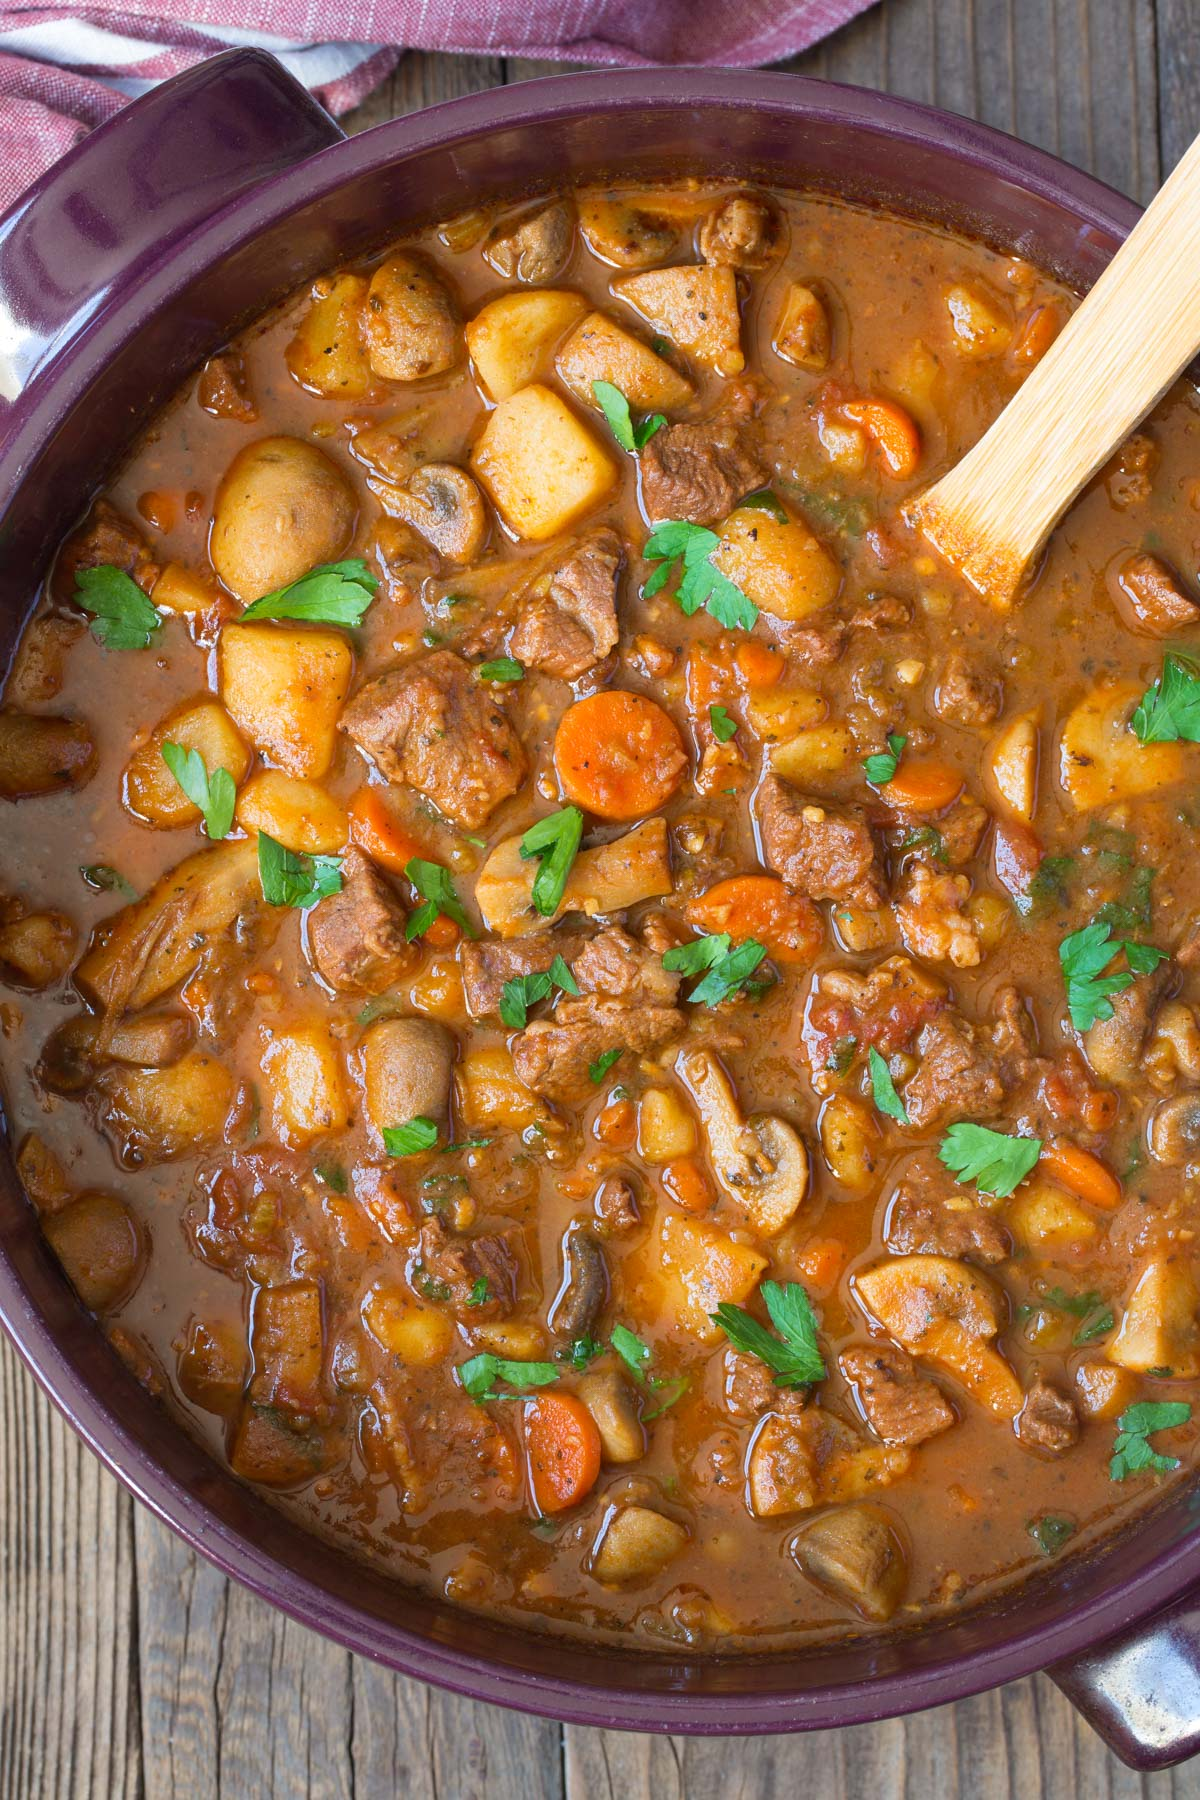 The Best Instant Pot Beef Stew Recipe with Mushrooms (Easy Crockpot Beef Stew) #ASpicyPerspective #beefstew #crockpot #slowcooker